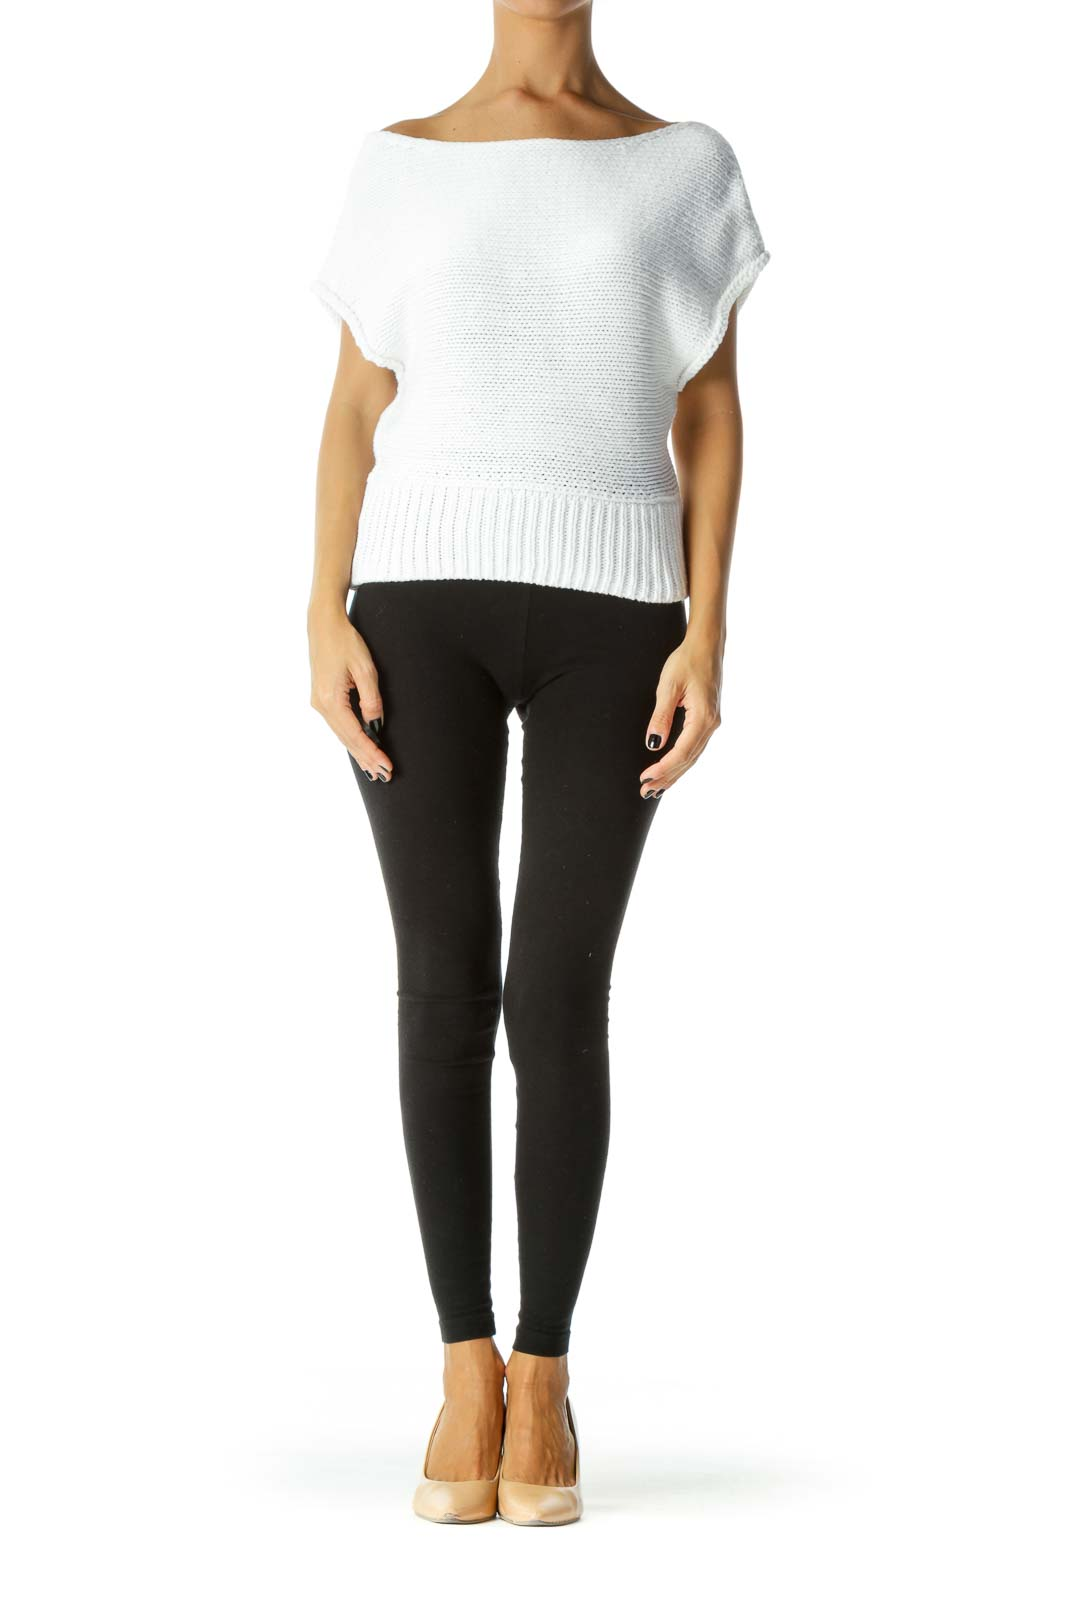 White Boat Neck Cap Sleeves Knit Top